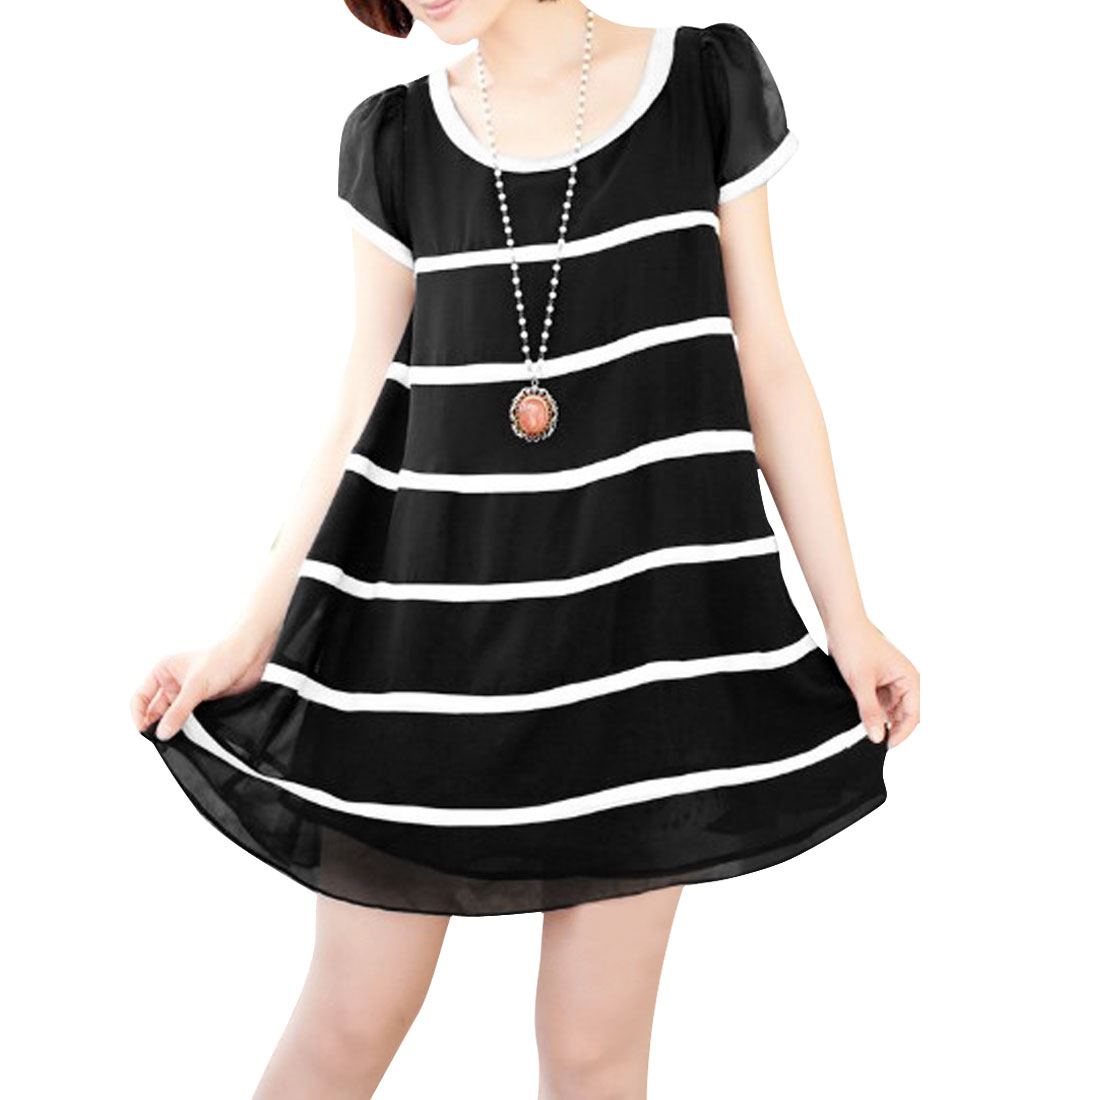 Lady Stylish Short Sleeve Stripes Pattern Black Chiffon Dress XS